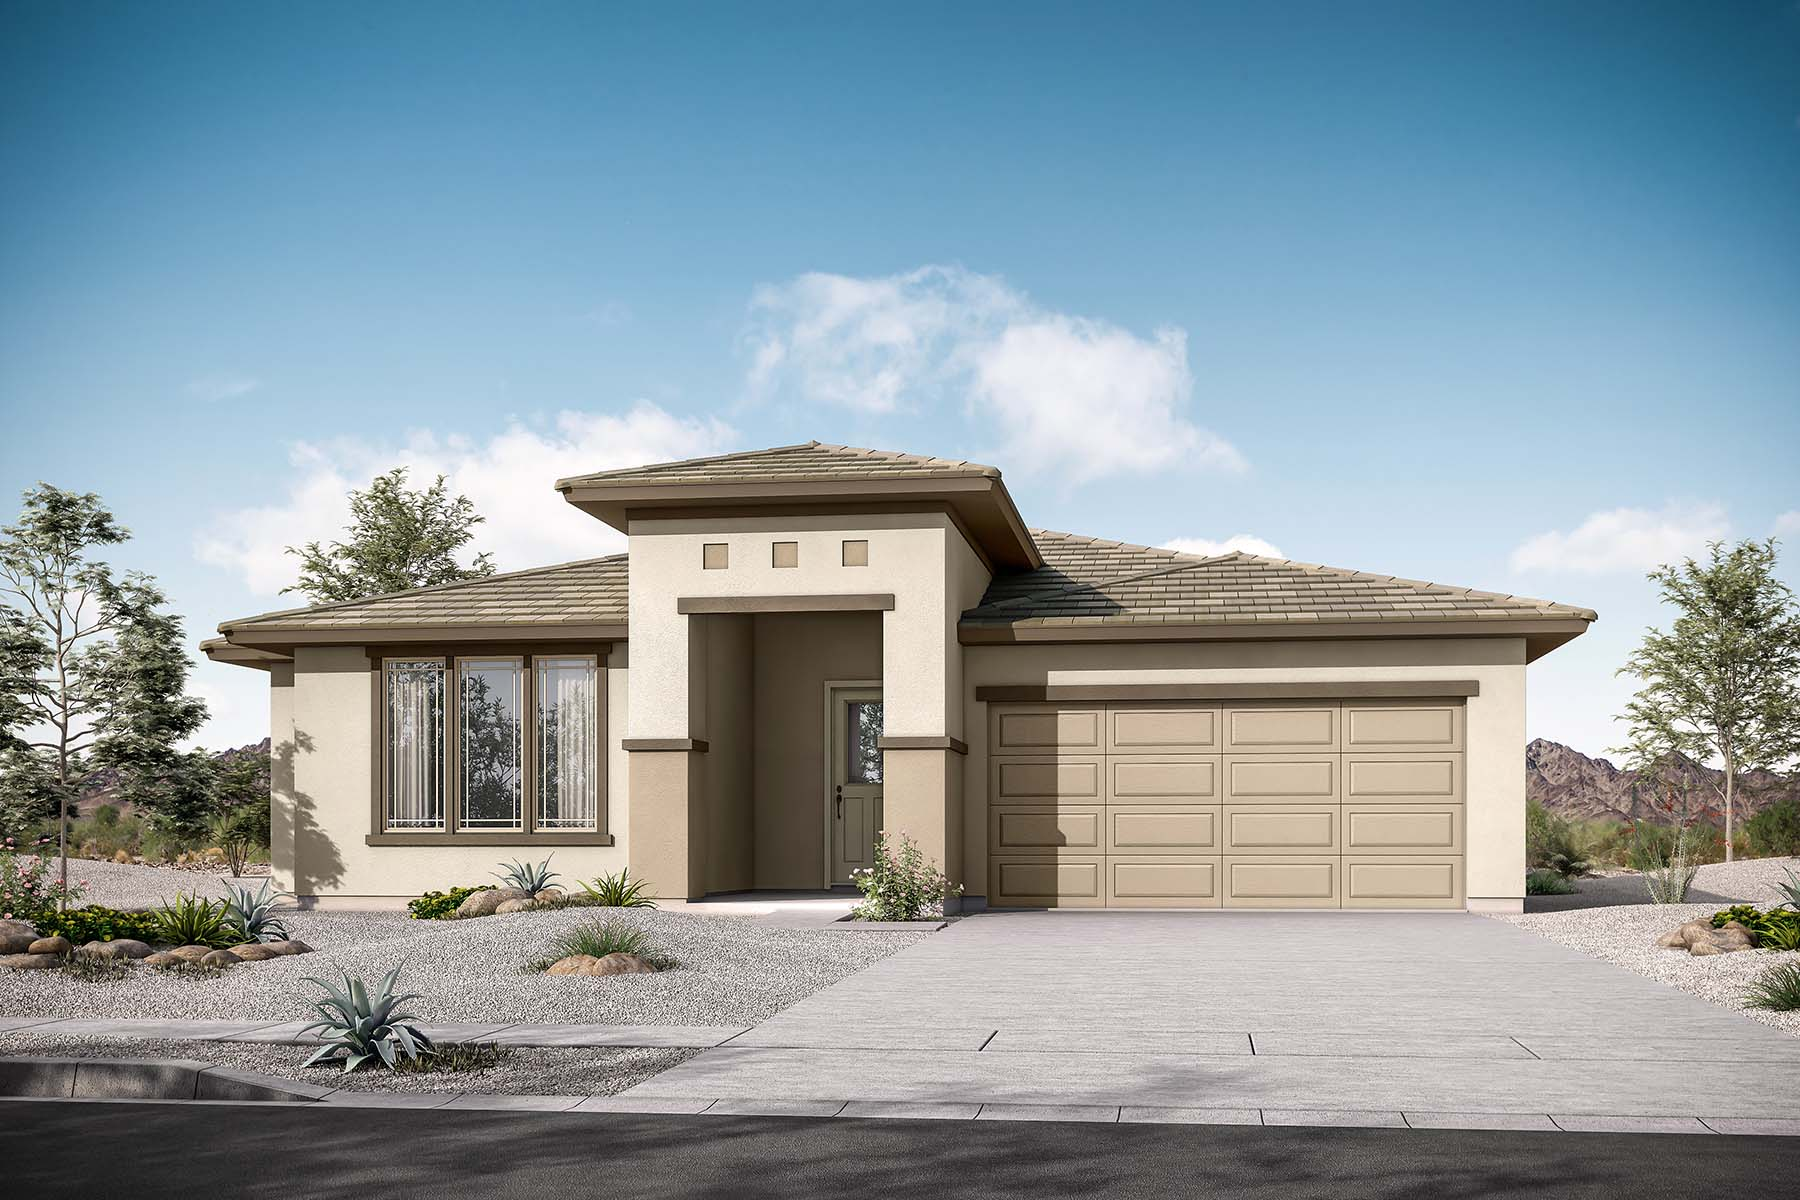 Caden Plan  at Vista Diamante at Camelback Ranch in Phoenix Arizona by Mattamy Homes